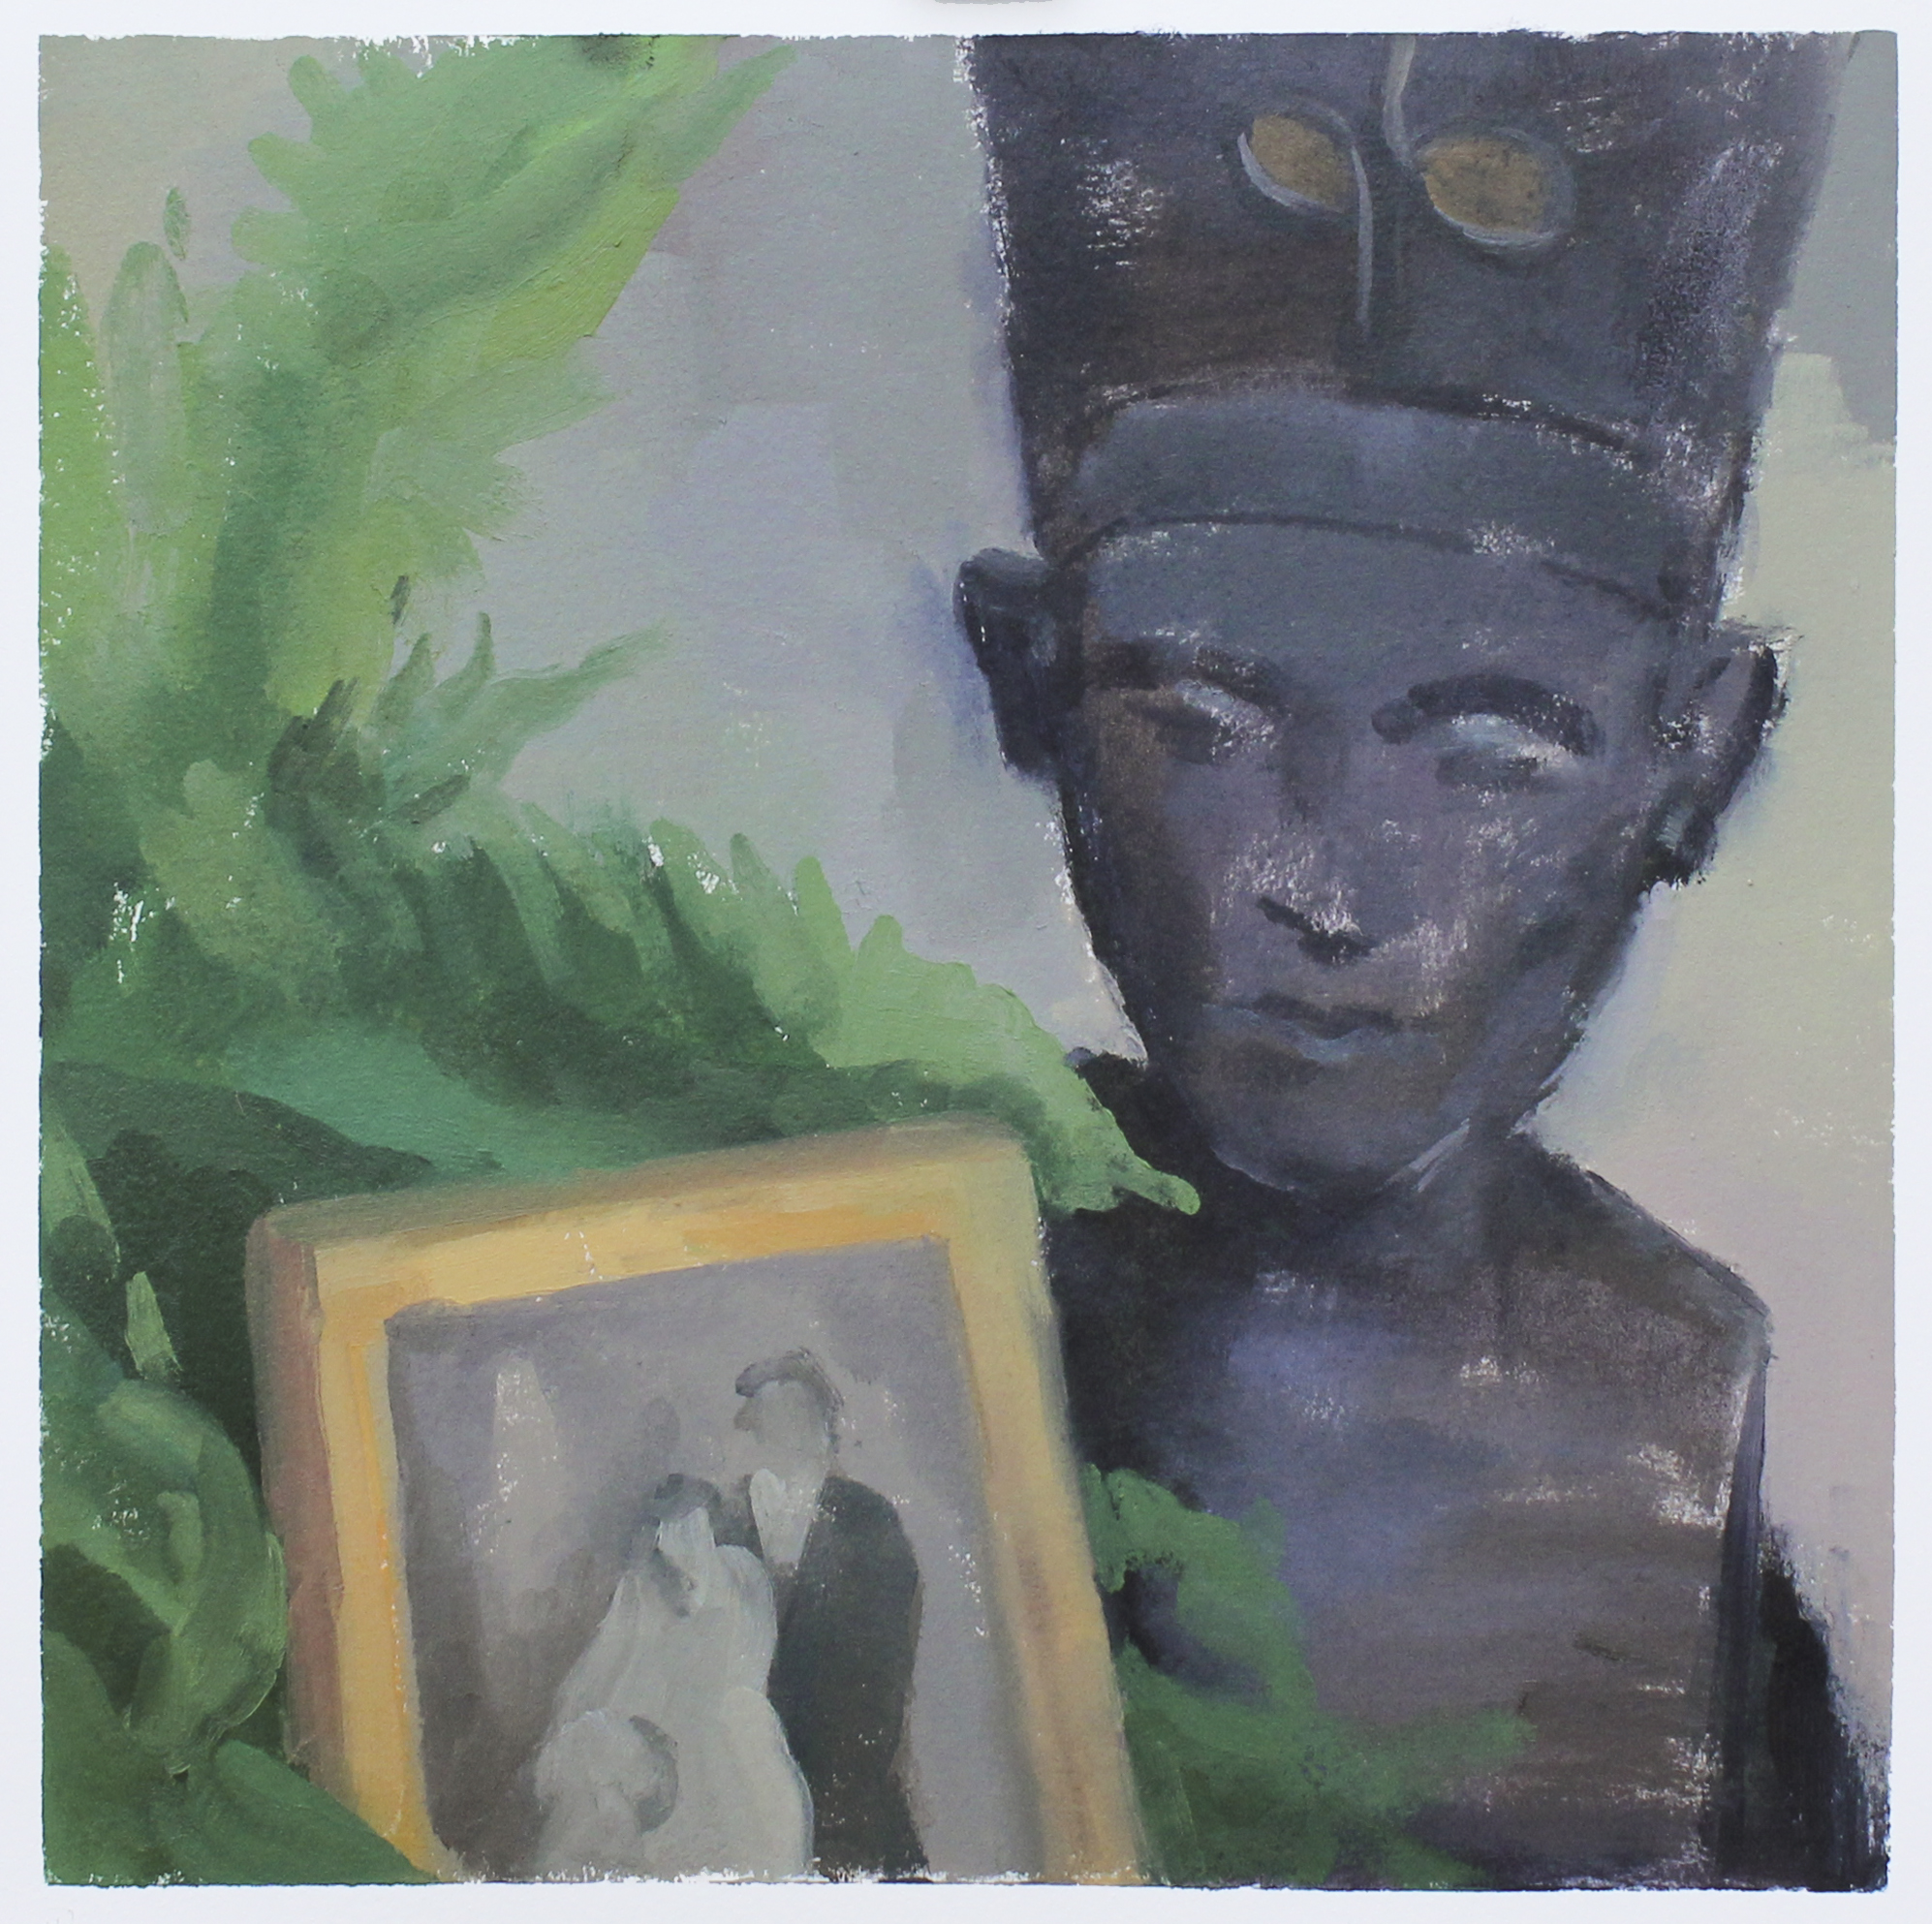 """nefertiti with ferns and framed photo   oil on paper  11.25x11.25""""  2017   purchase"""